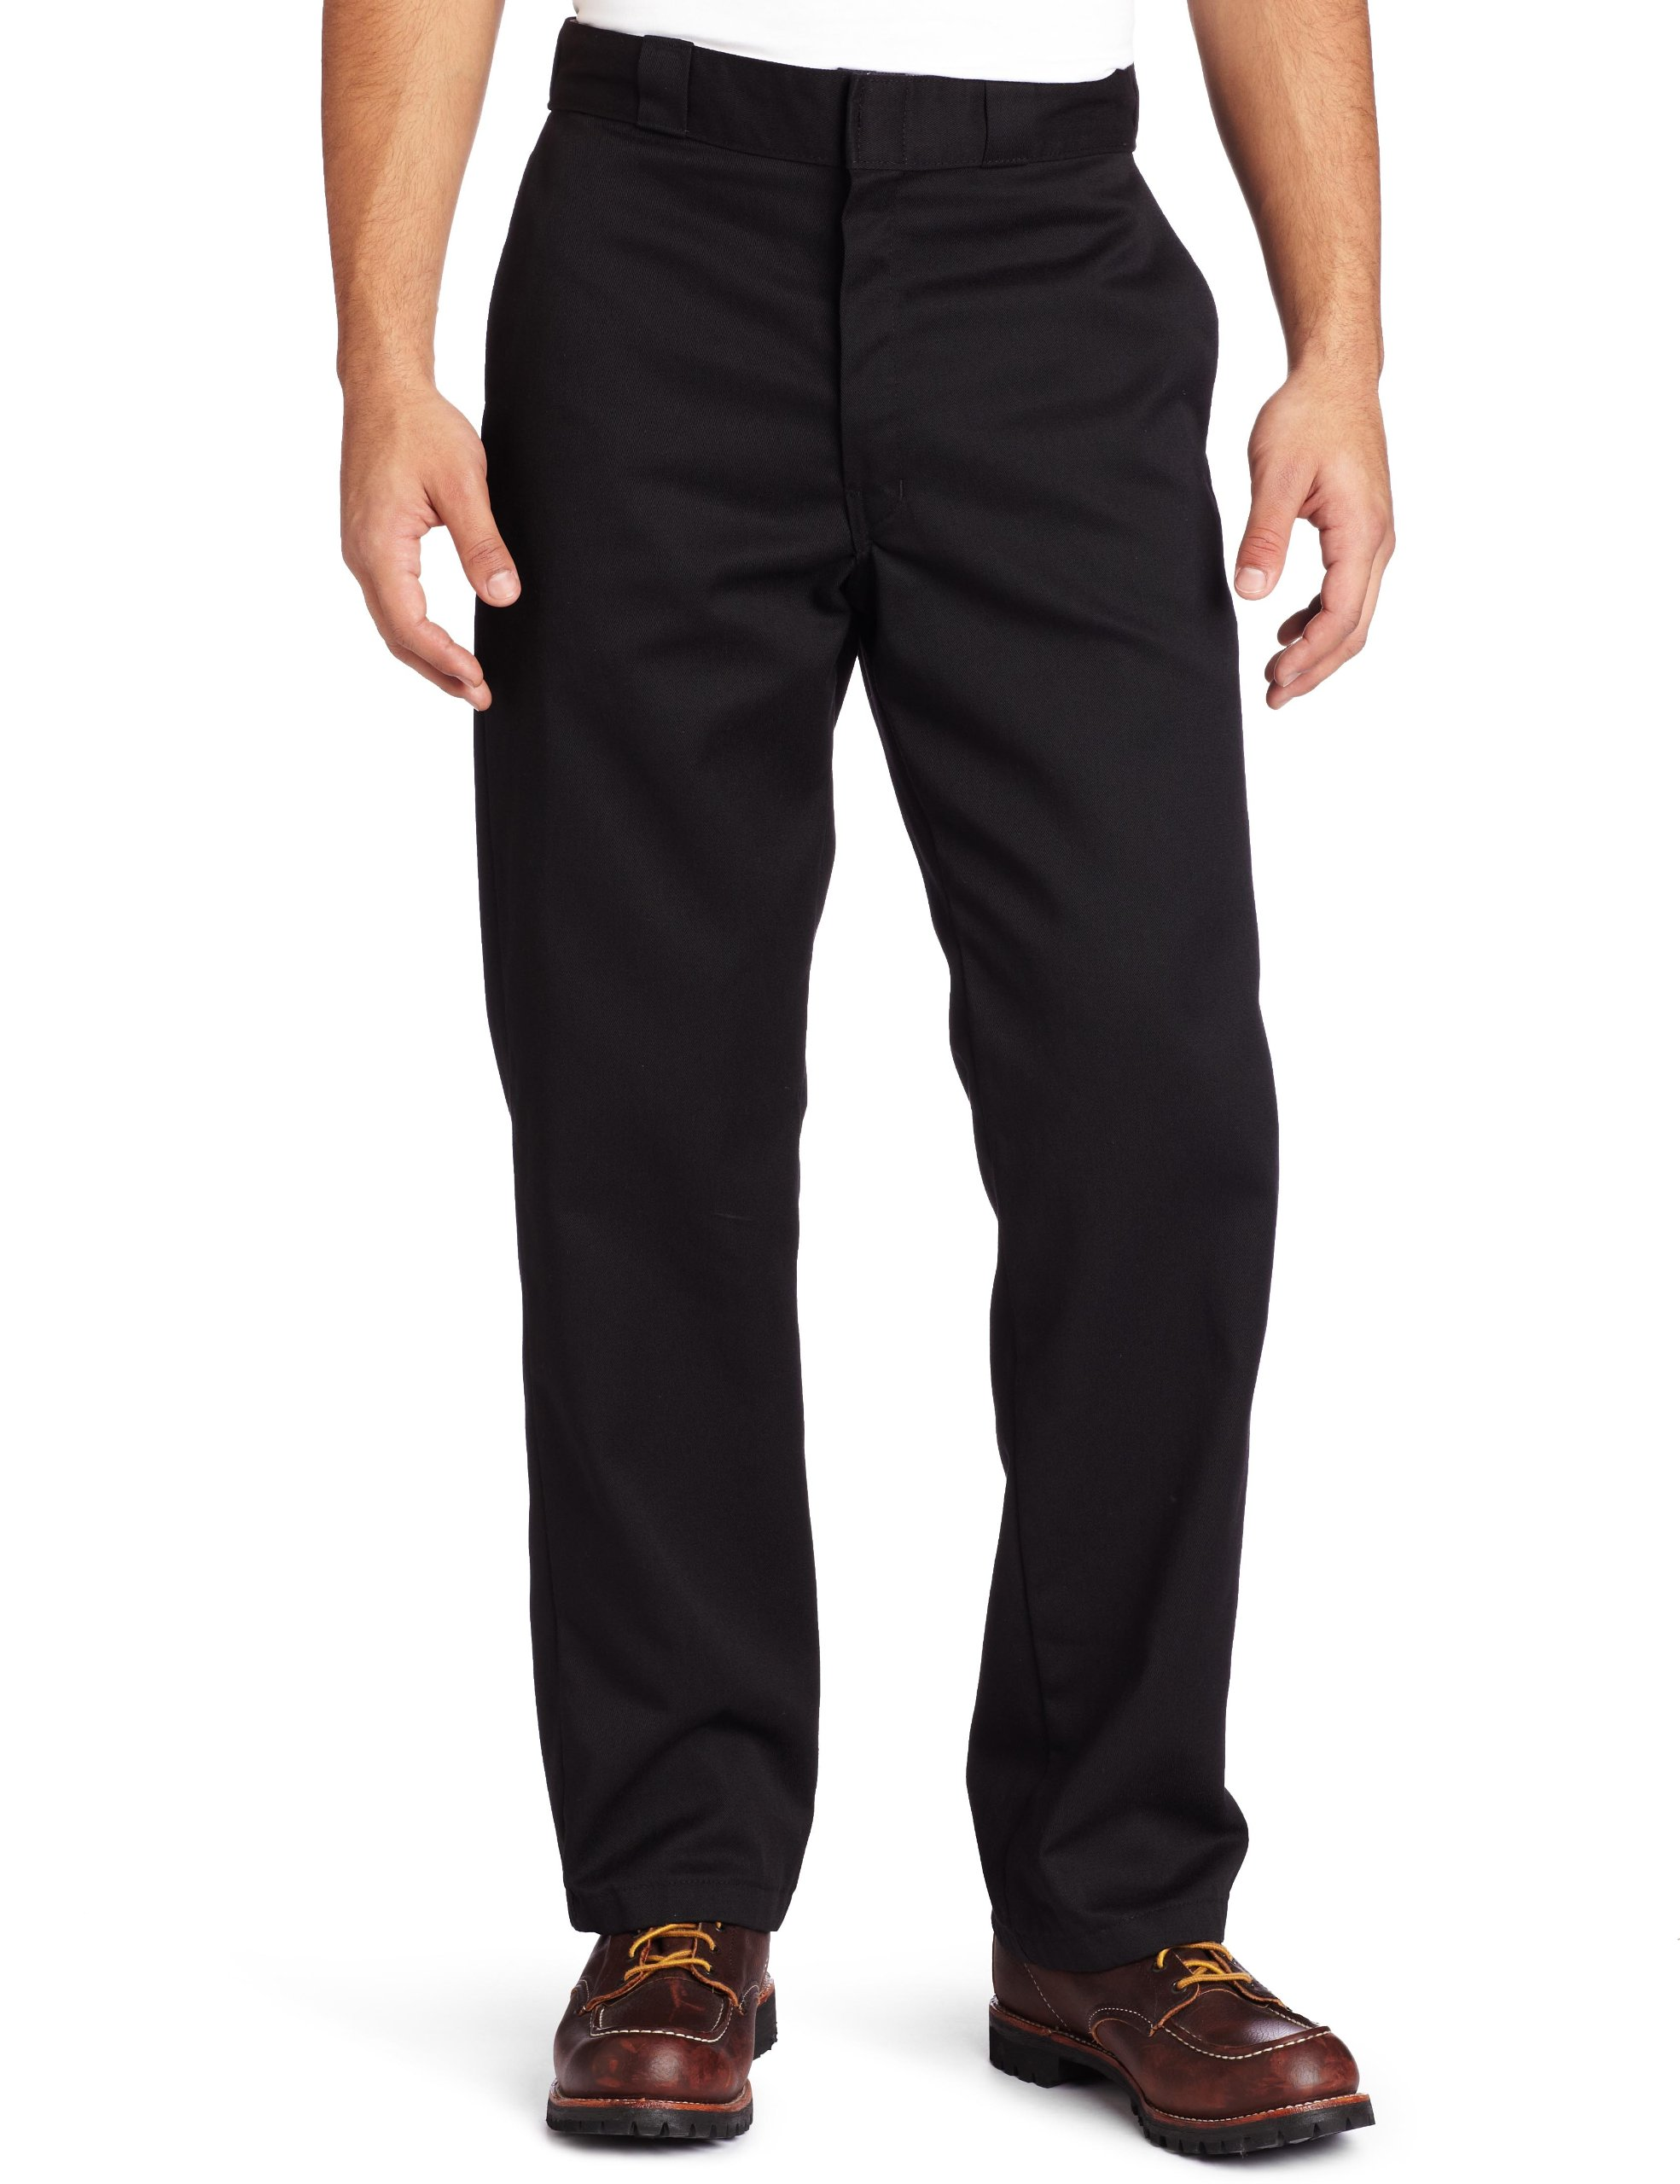 Dickies Mens Original 874 Work Pant, Black, 44W x 32L